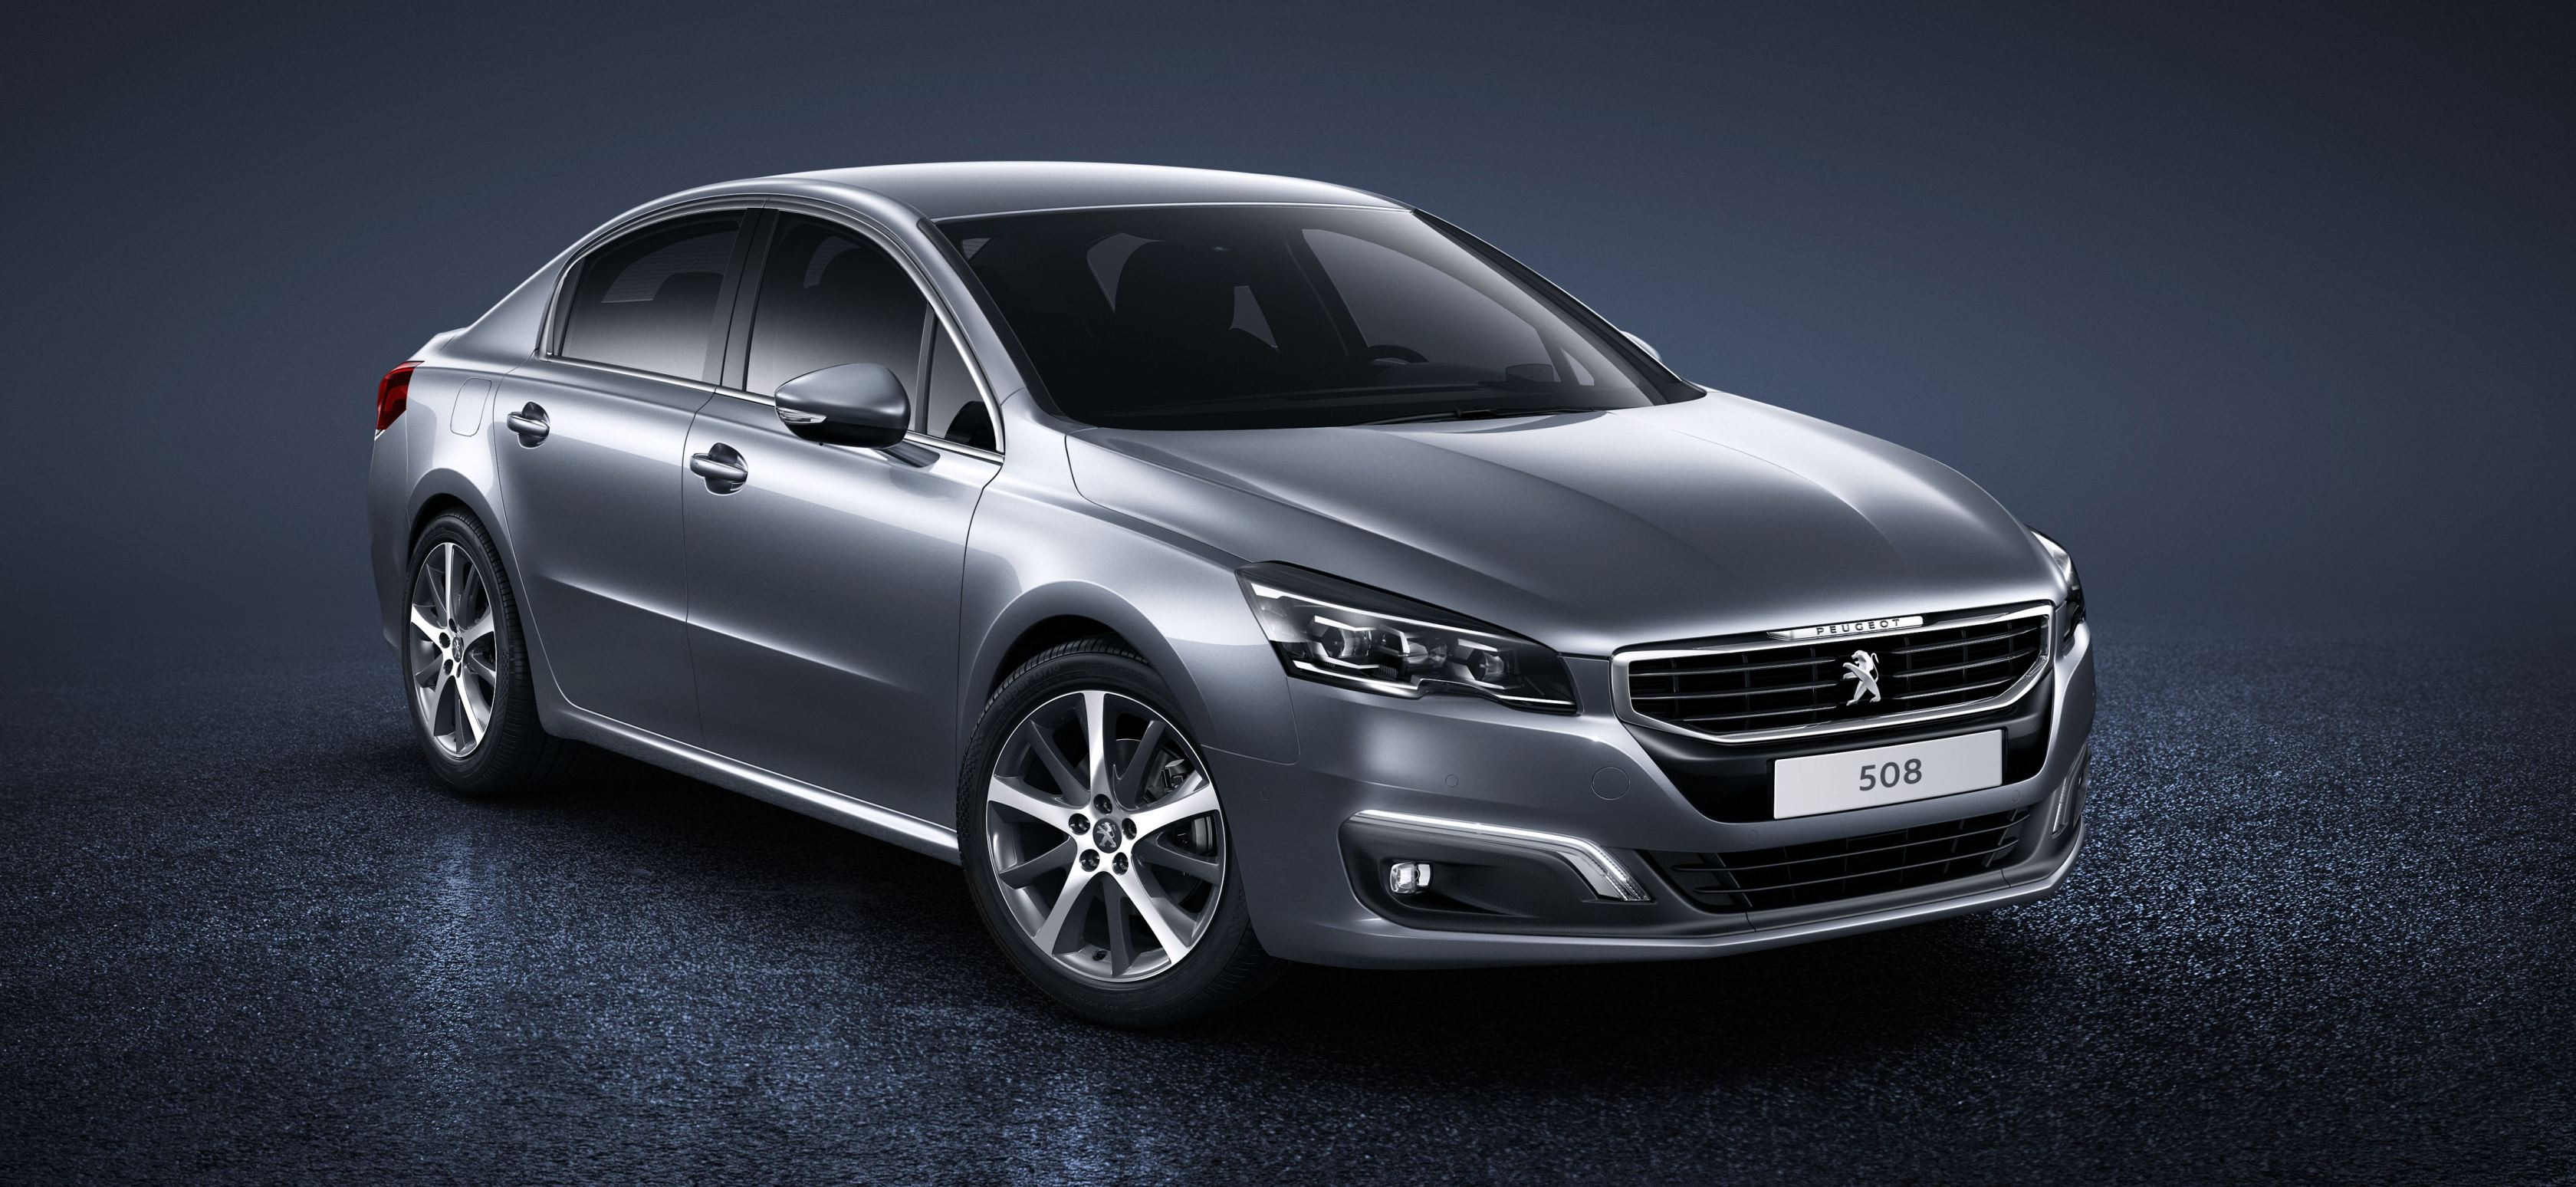 2015 yeni peugeot 508 sedan a yak ndan bakal m oto kokpit. Black Bedroom Furniture Sets. Home Design Ideas